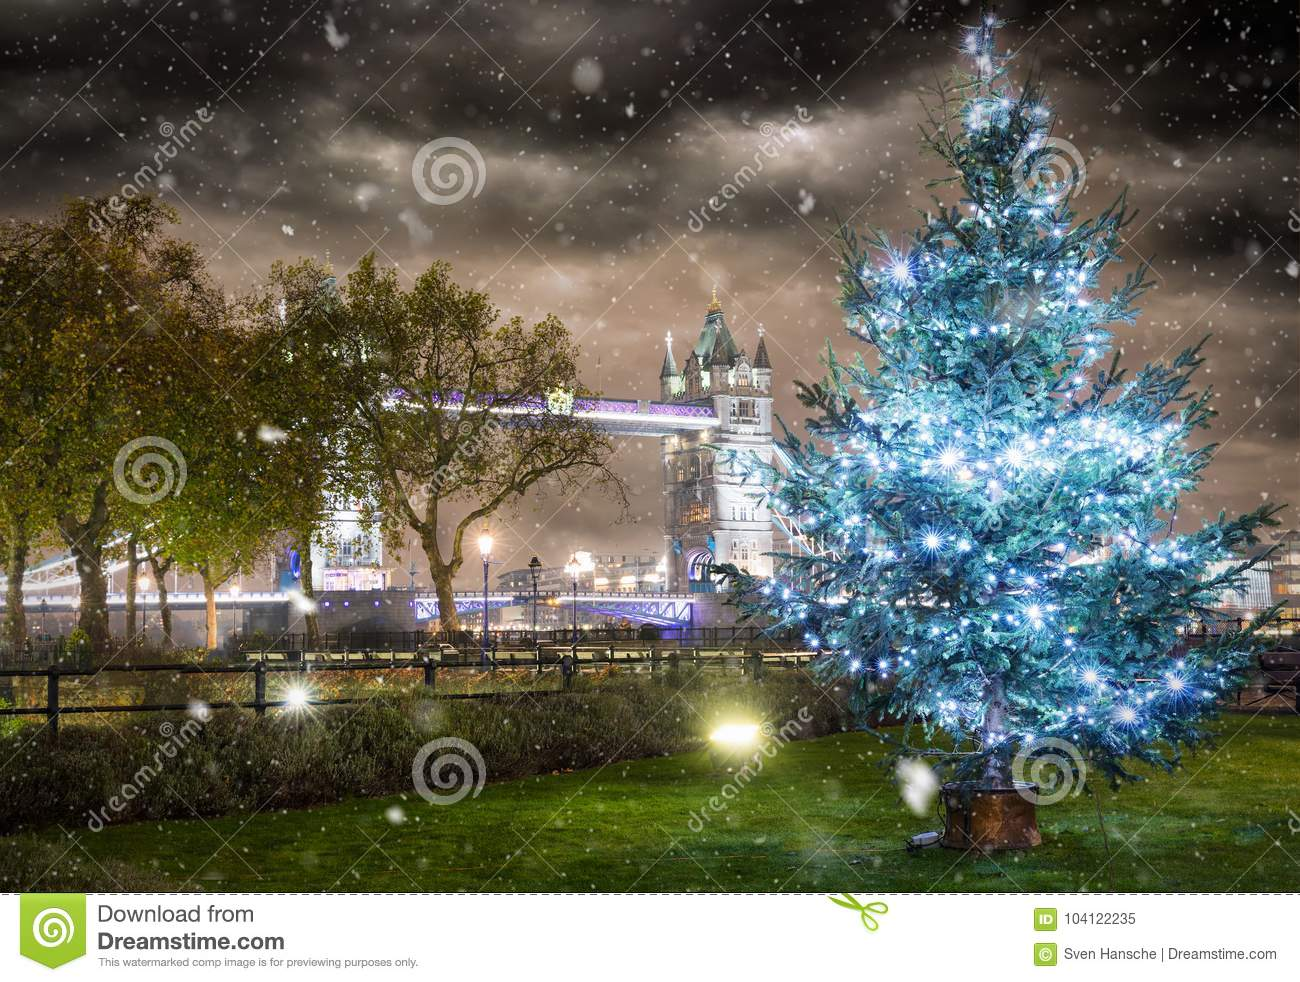 The iconic Tower Bridge in winter time with a christmas tree